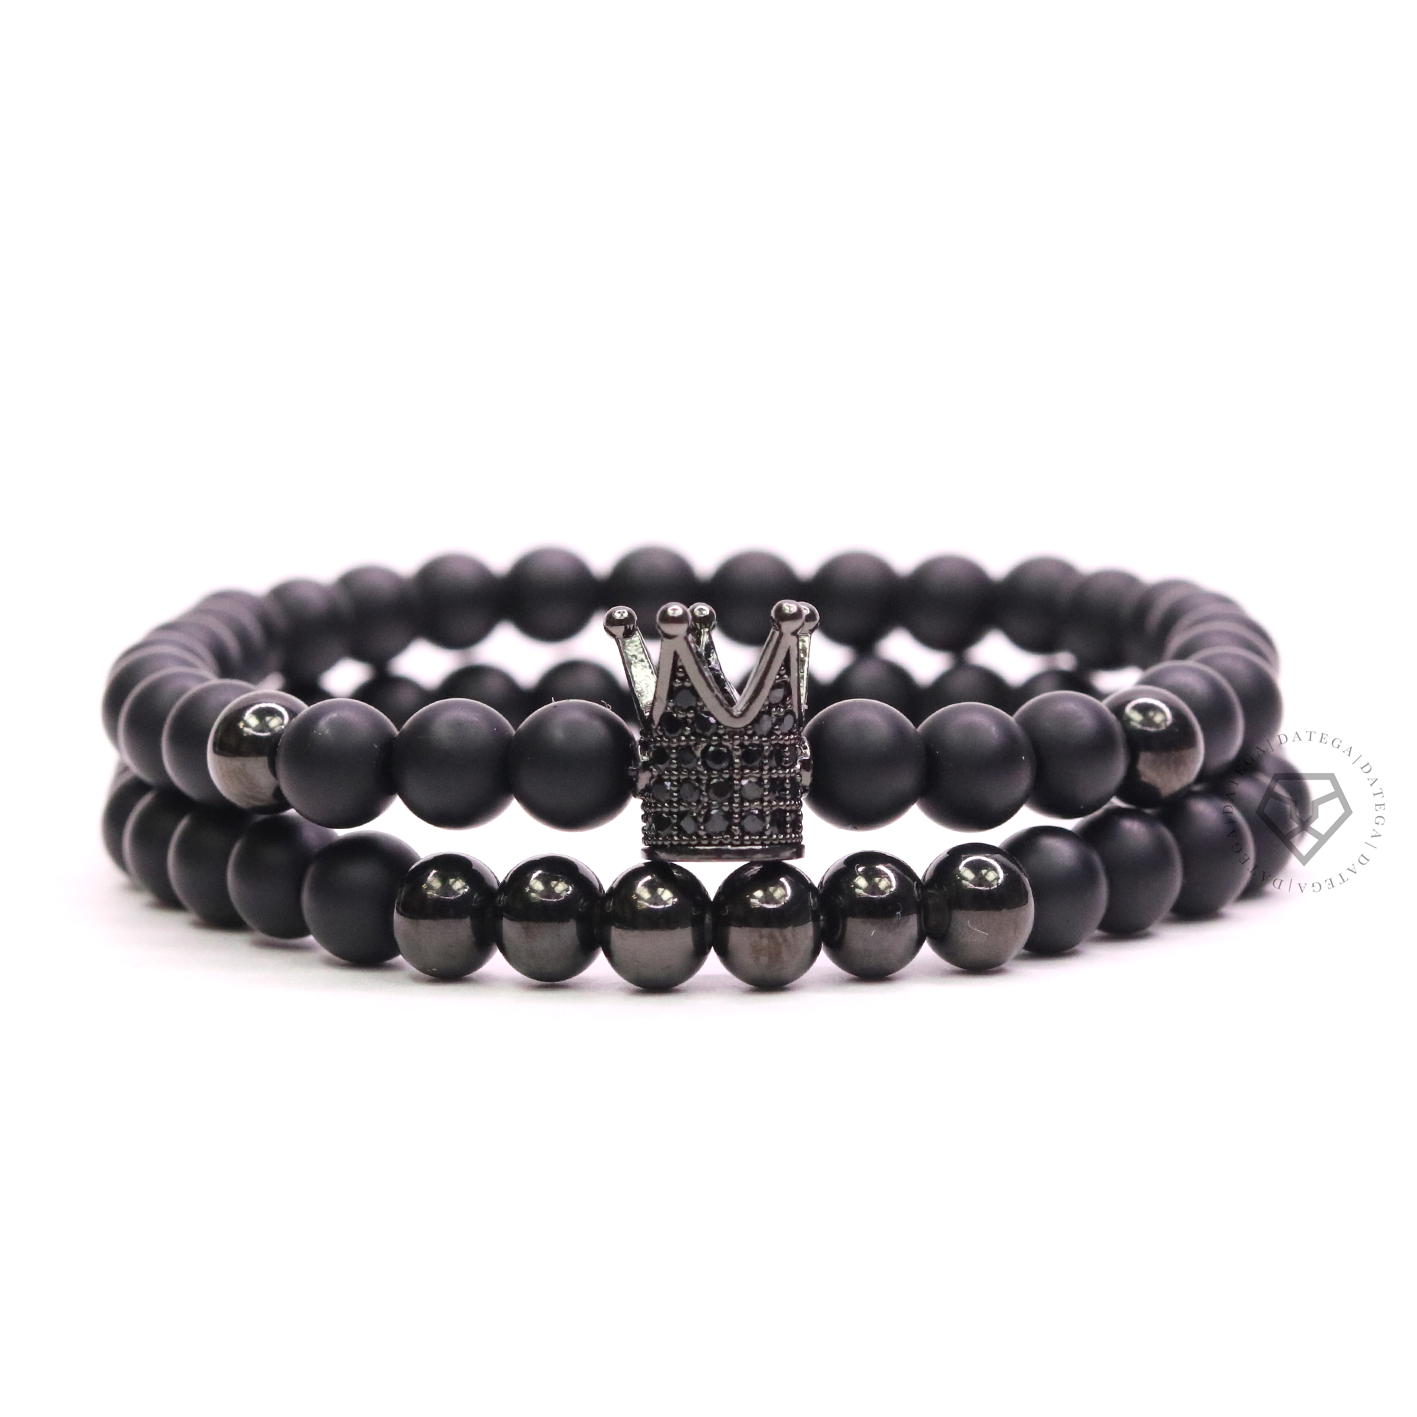 Rhodium Cz Crown, Spheres & Matte Onyx - Set